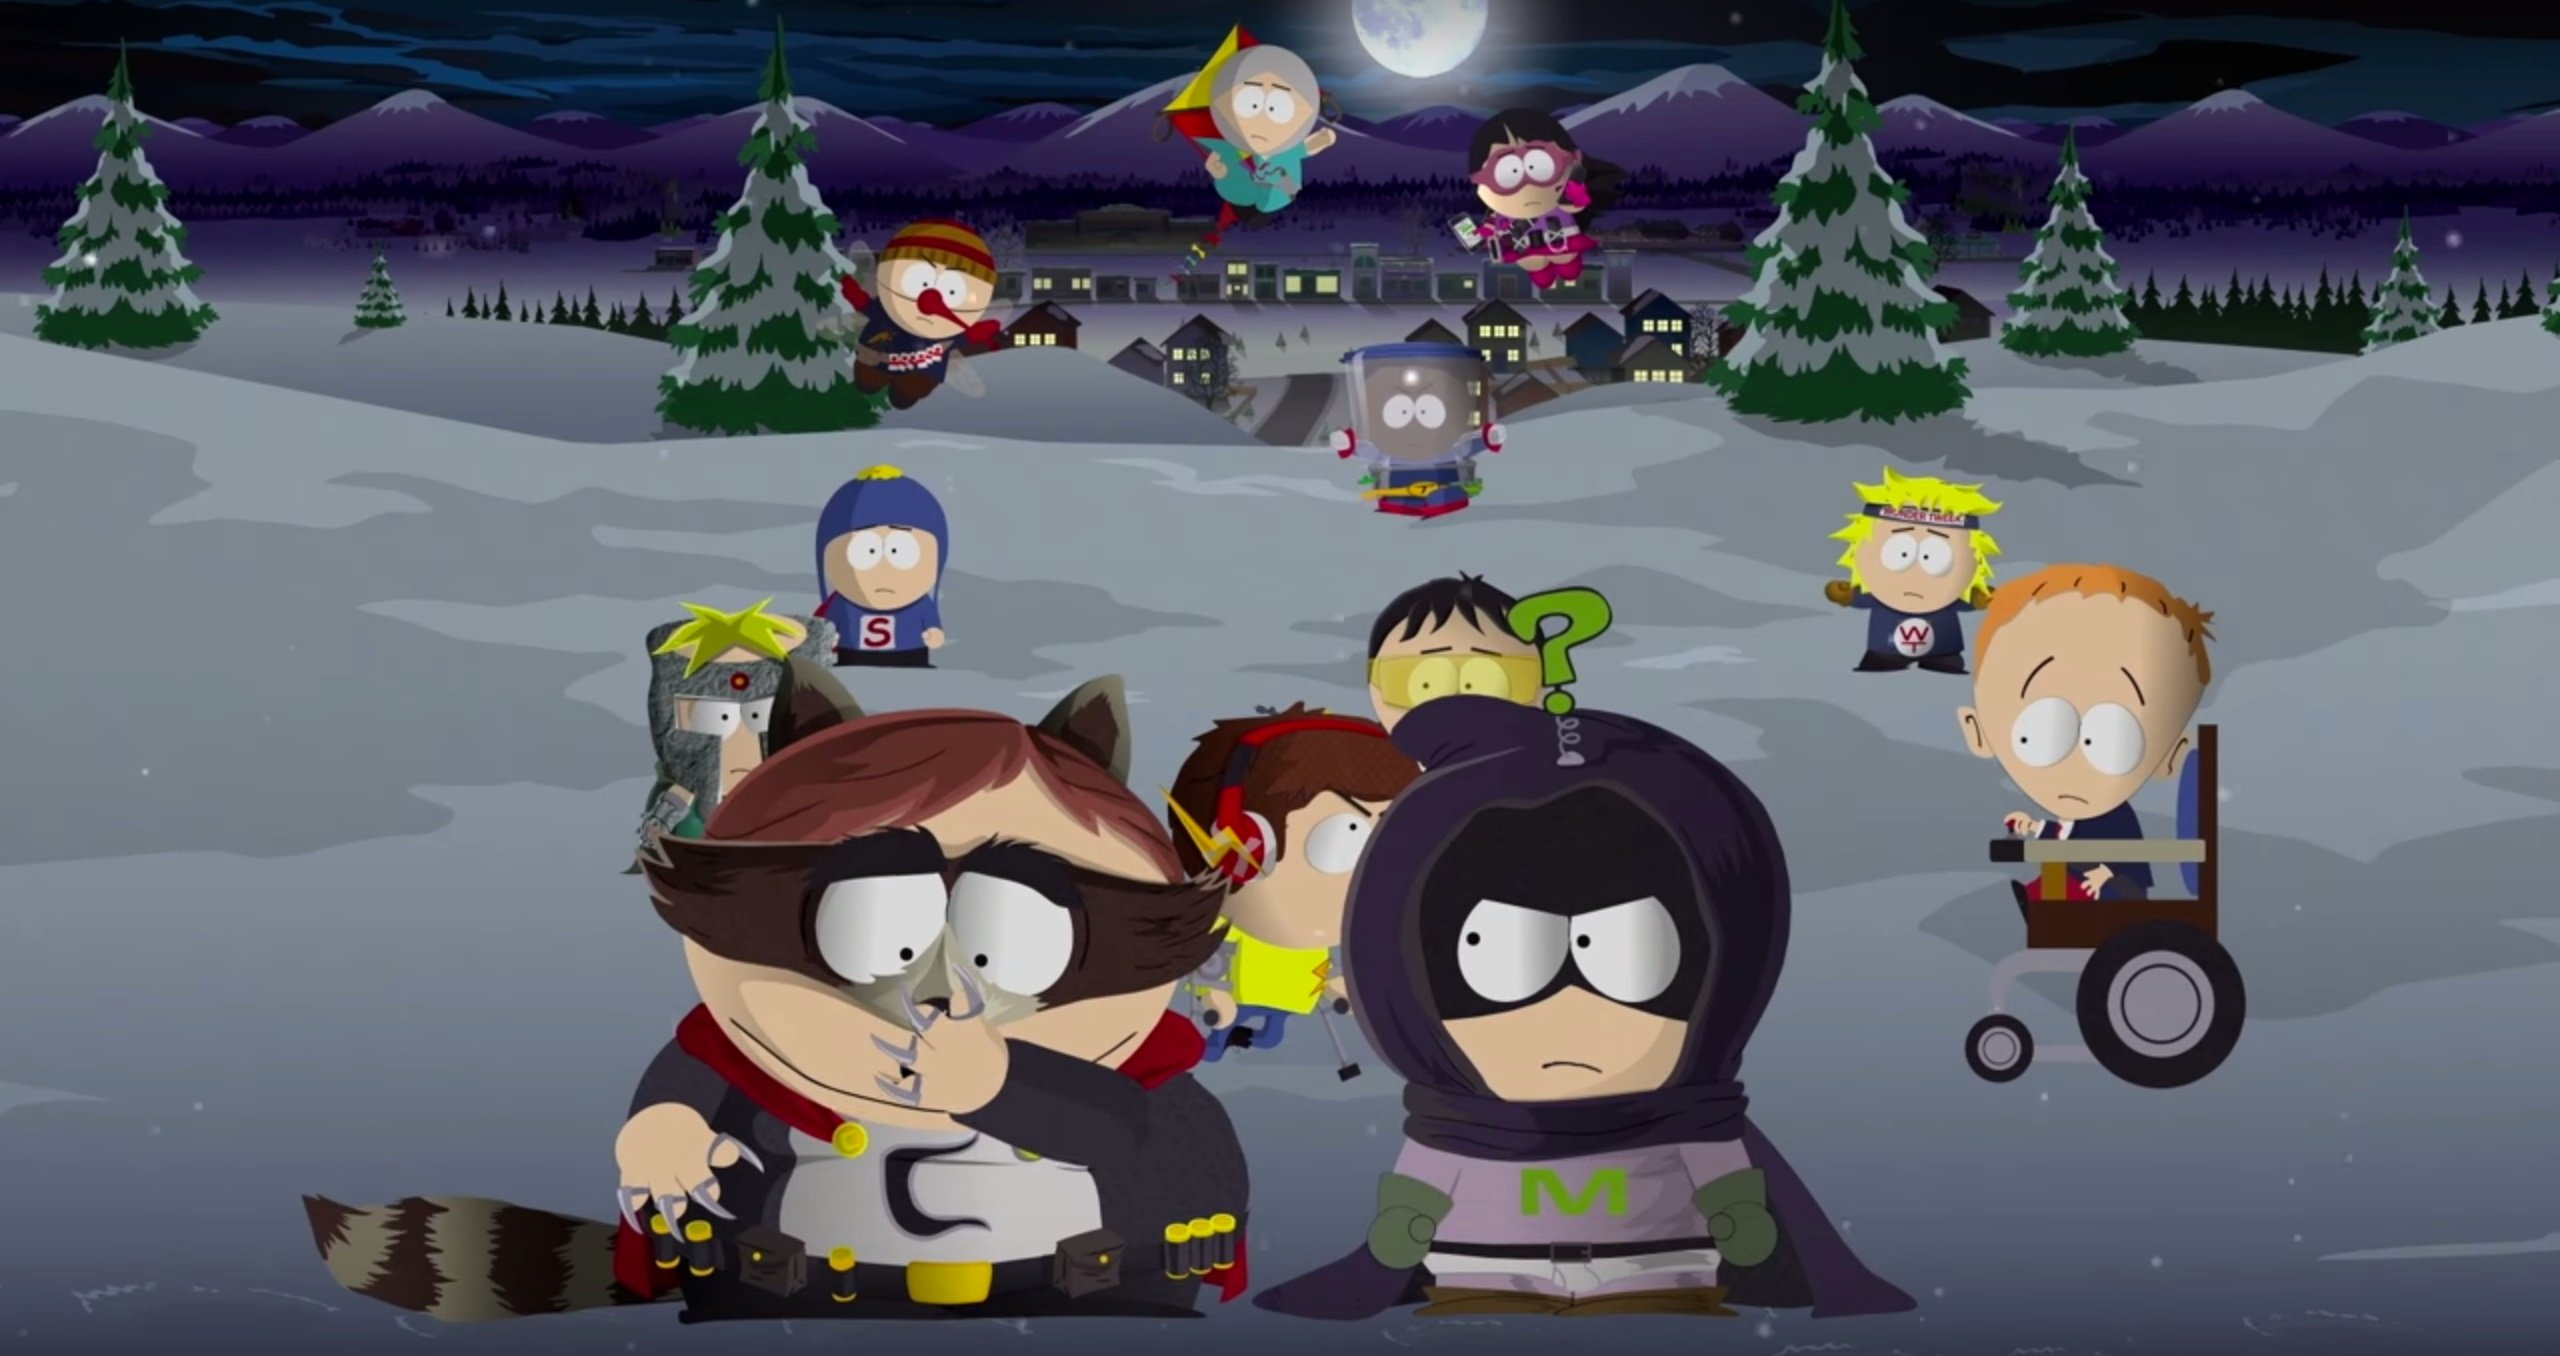 More evidence points to South Park: The Fractured but Whole coming to Switch screenshot